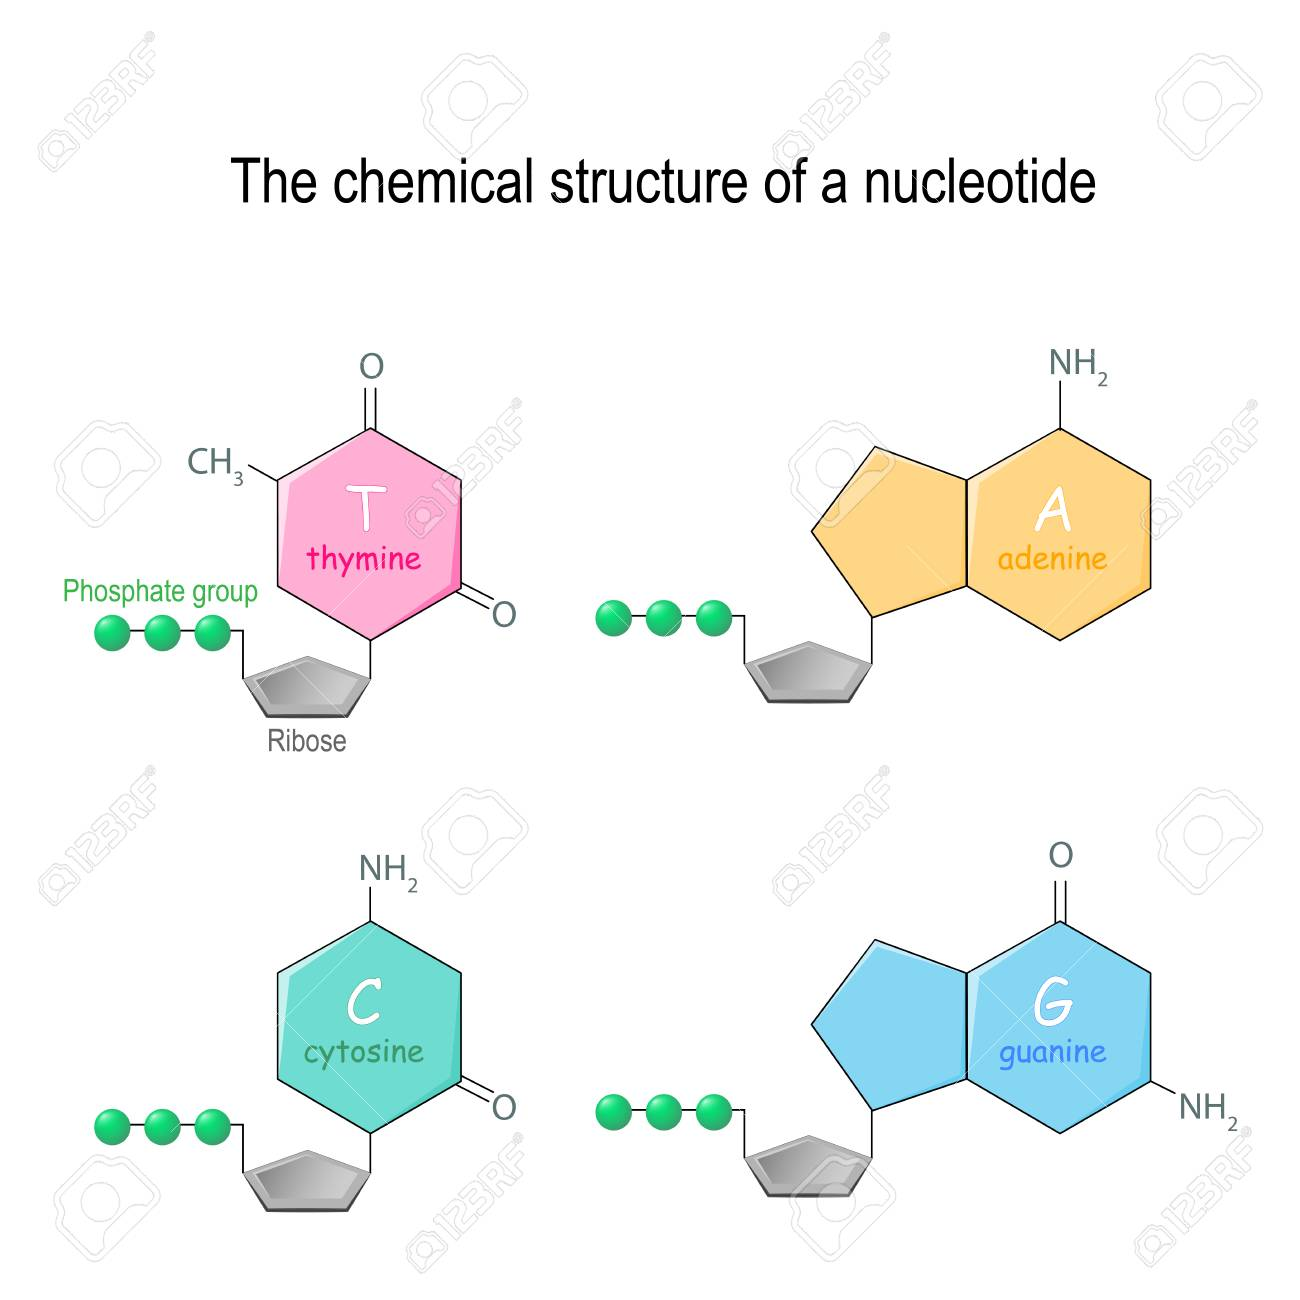 the chemical structure of a nucleotide  four main bases found in dna:  adenine,